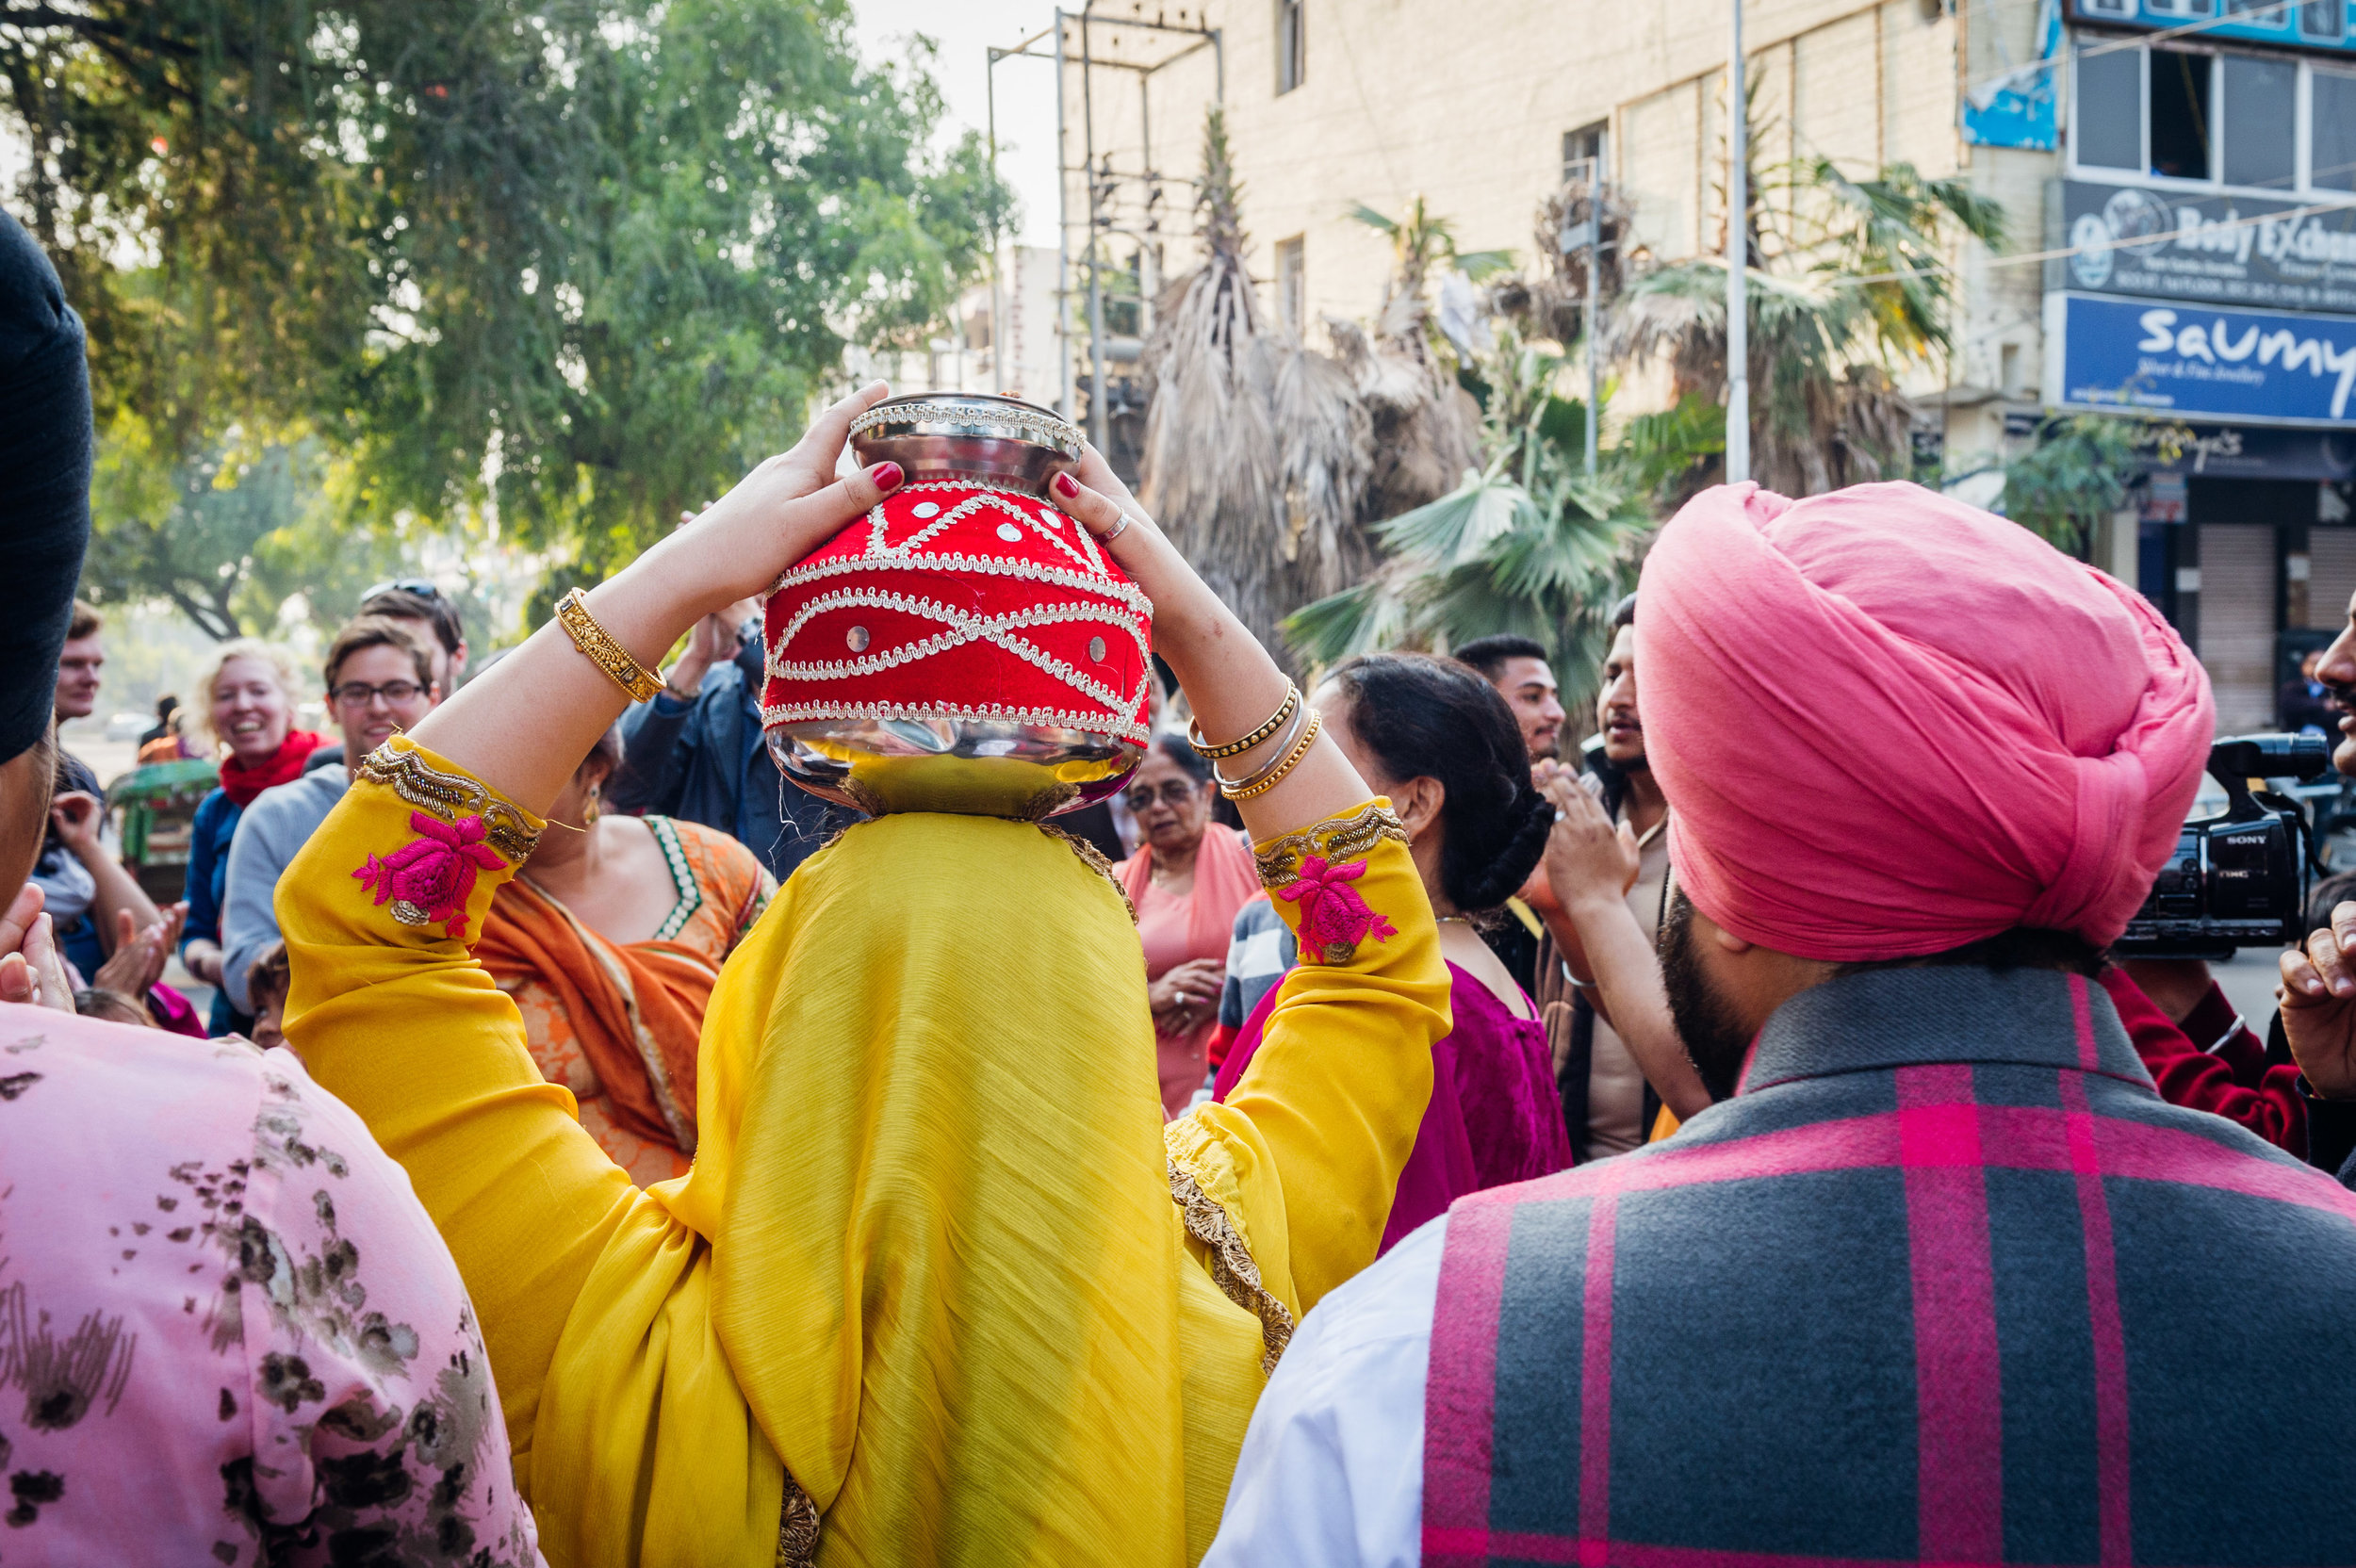 A female relative carries the Gharoli on her heading walking towards the Gurudwara.